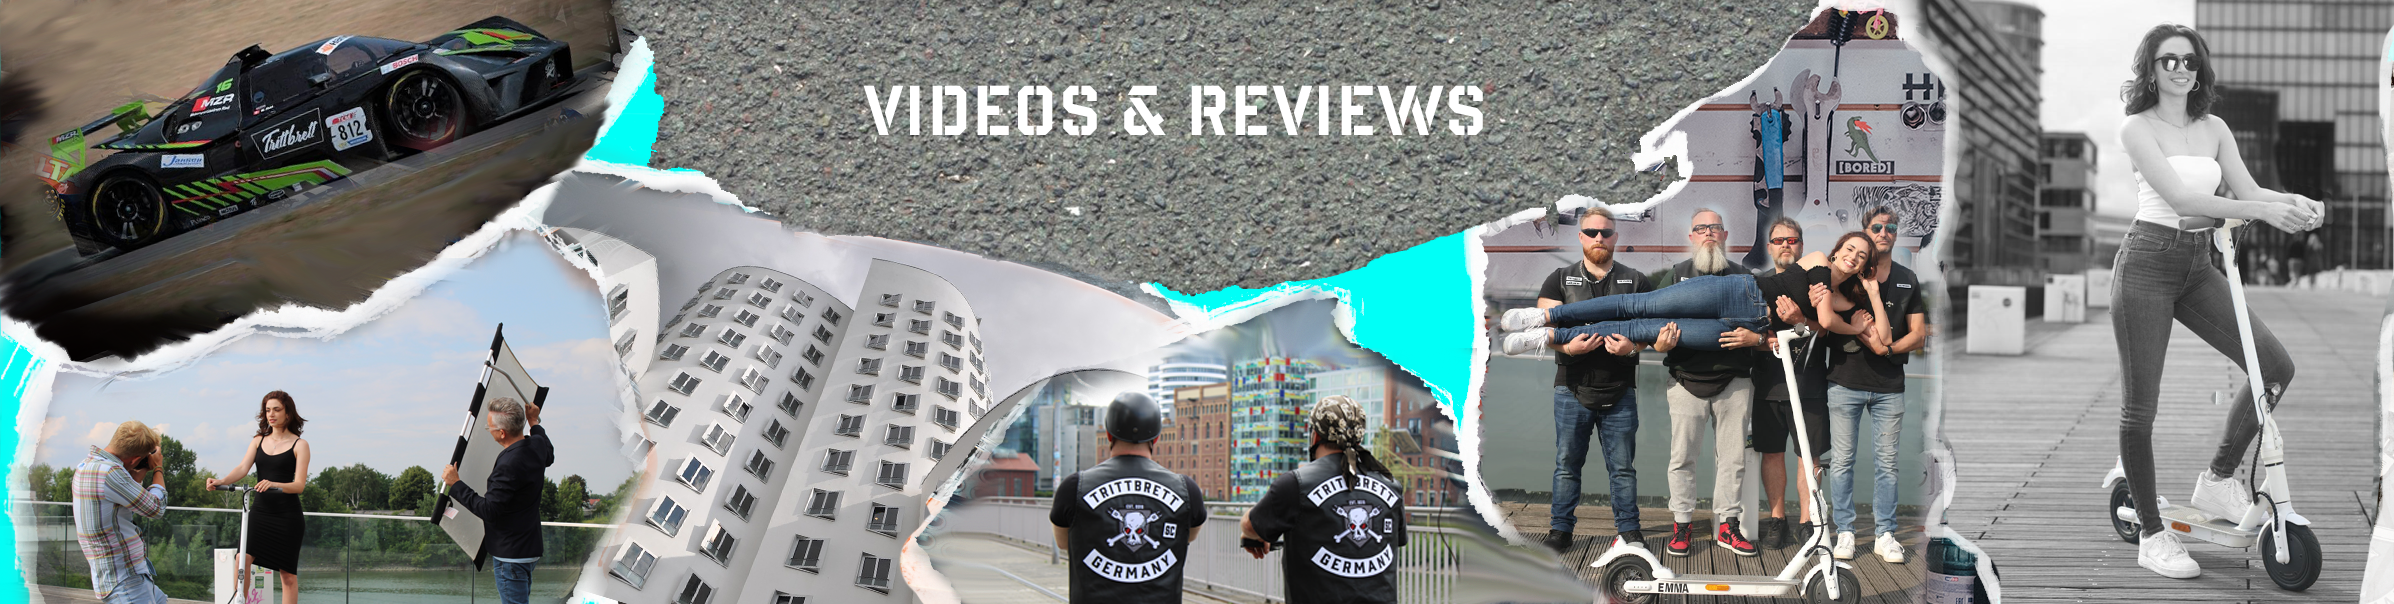 videos and reviews_Headerimage PNG